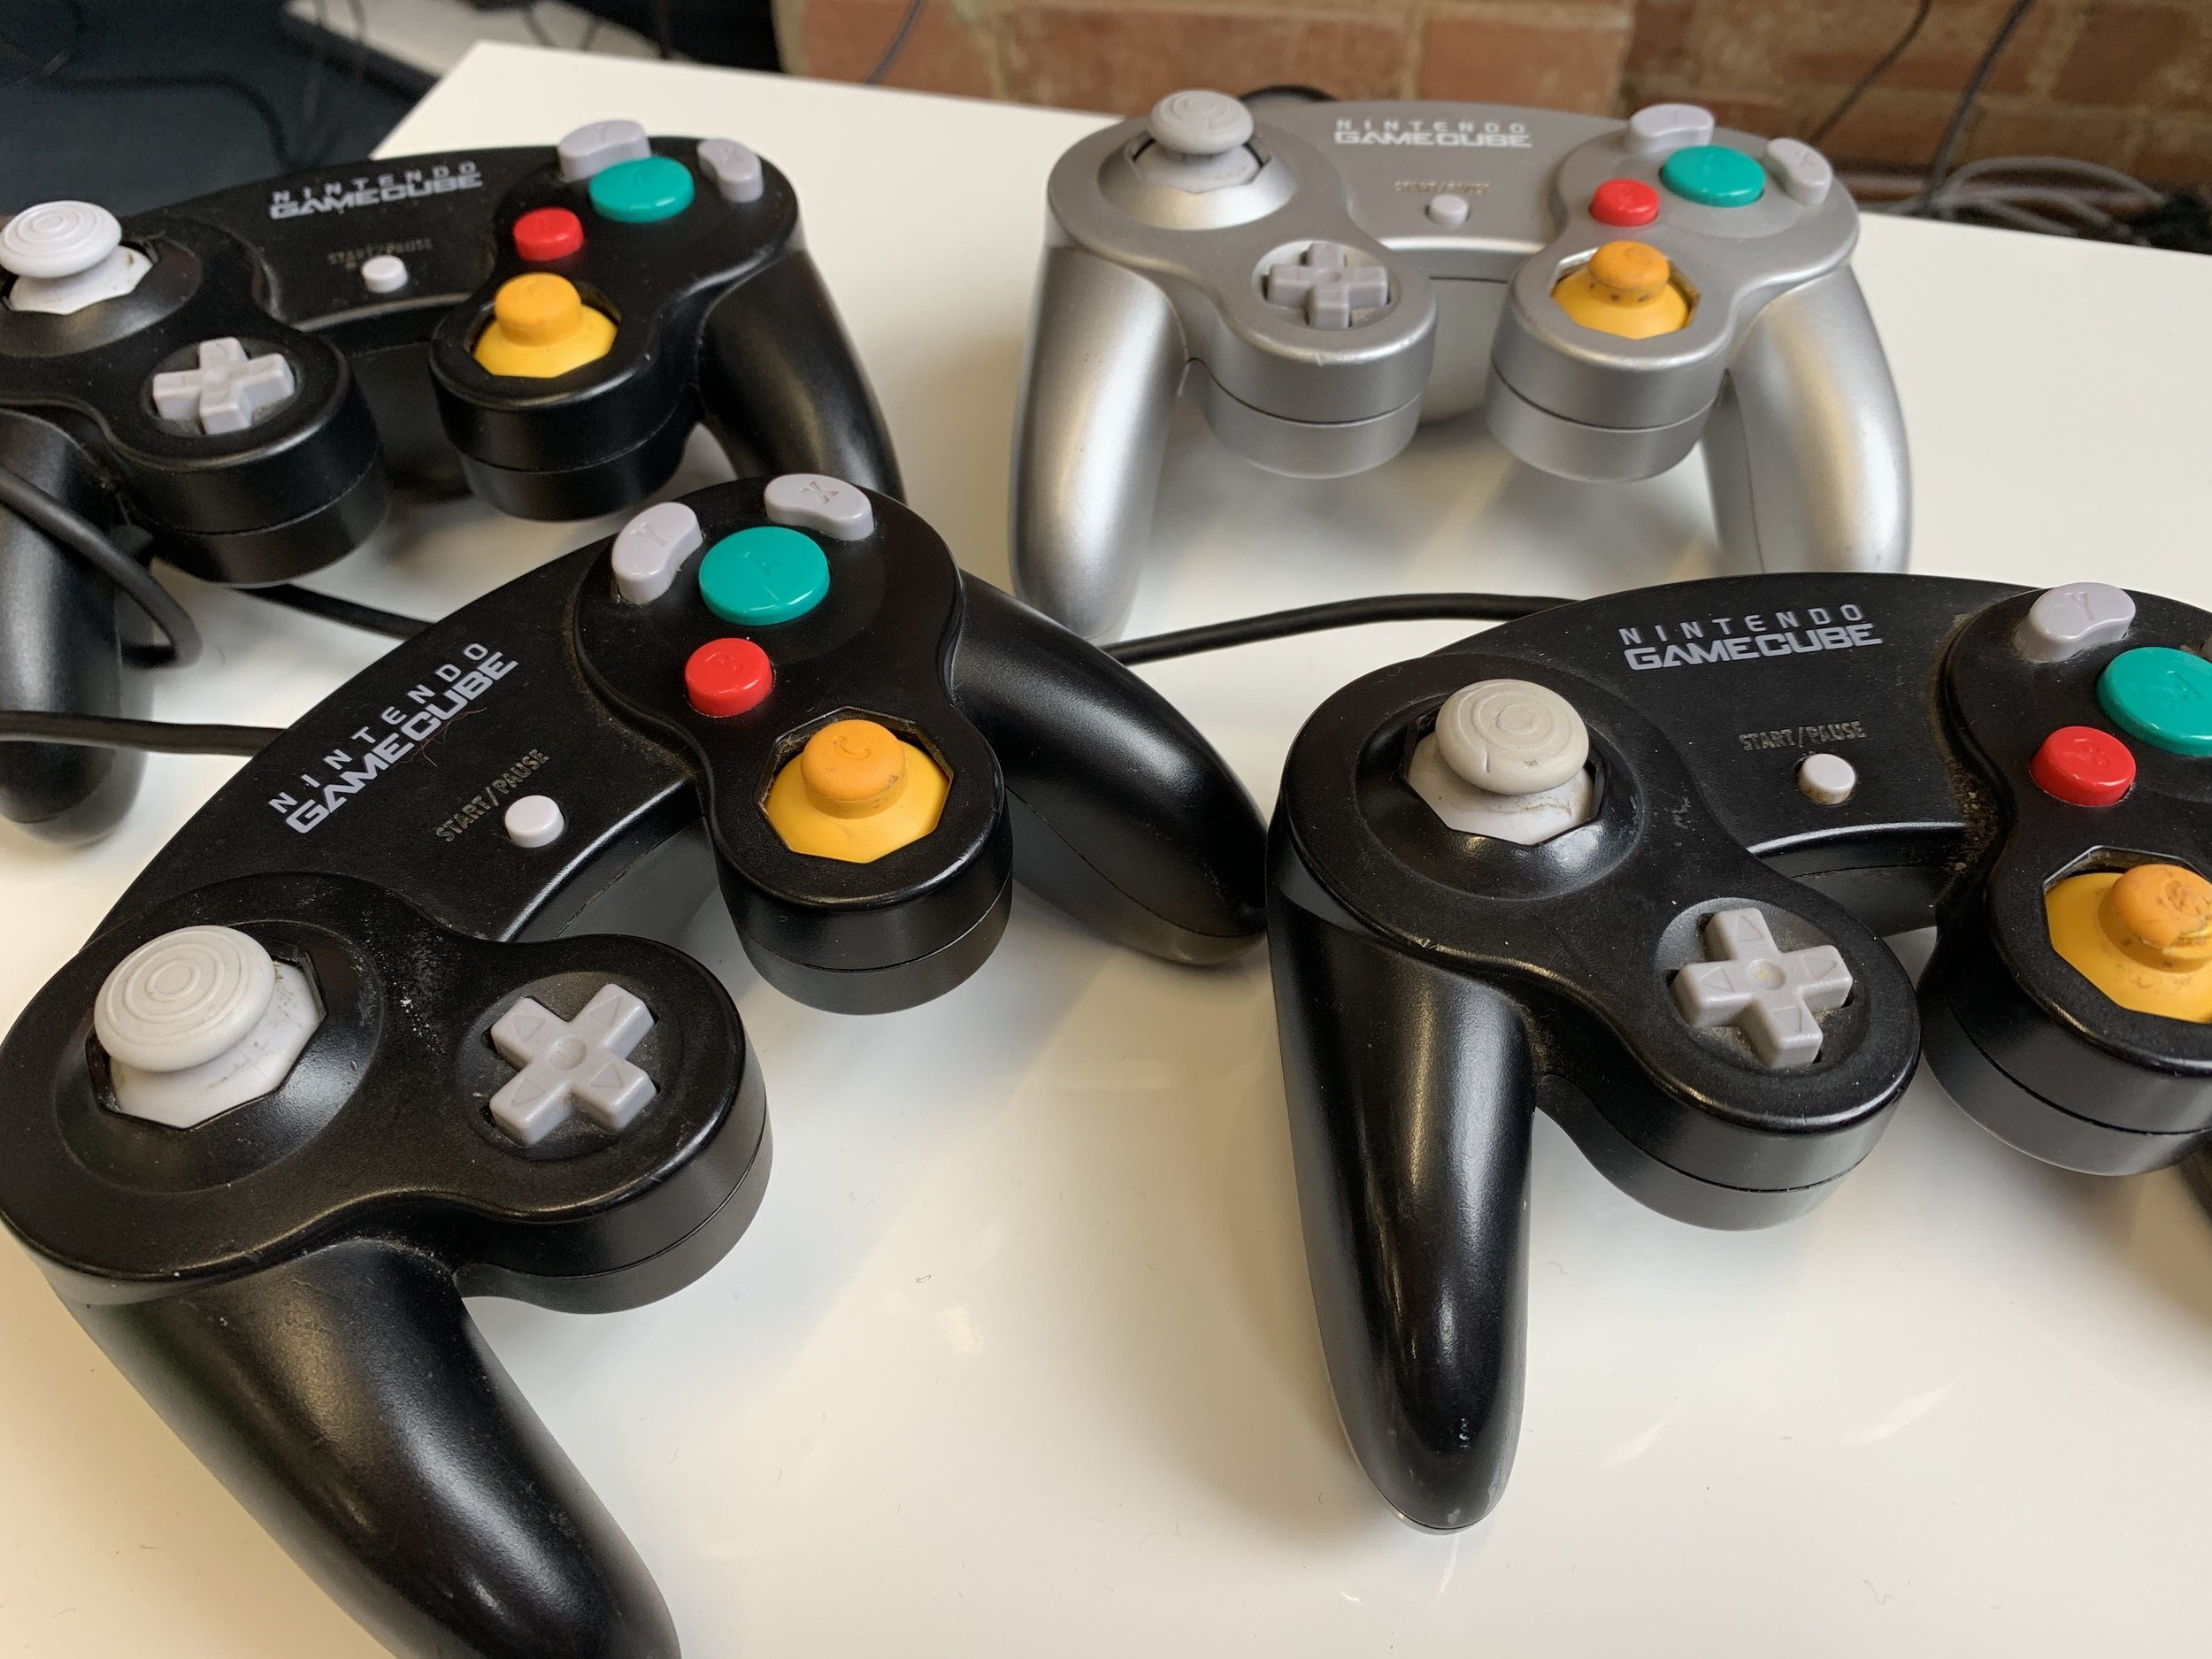 gaming lunches - Mario Kart and Smash Bros are the current faves